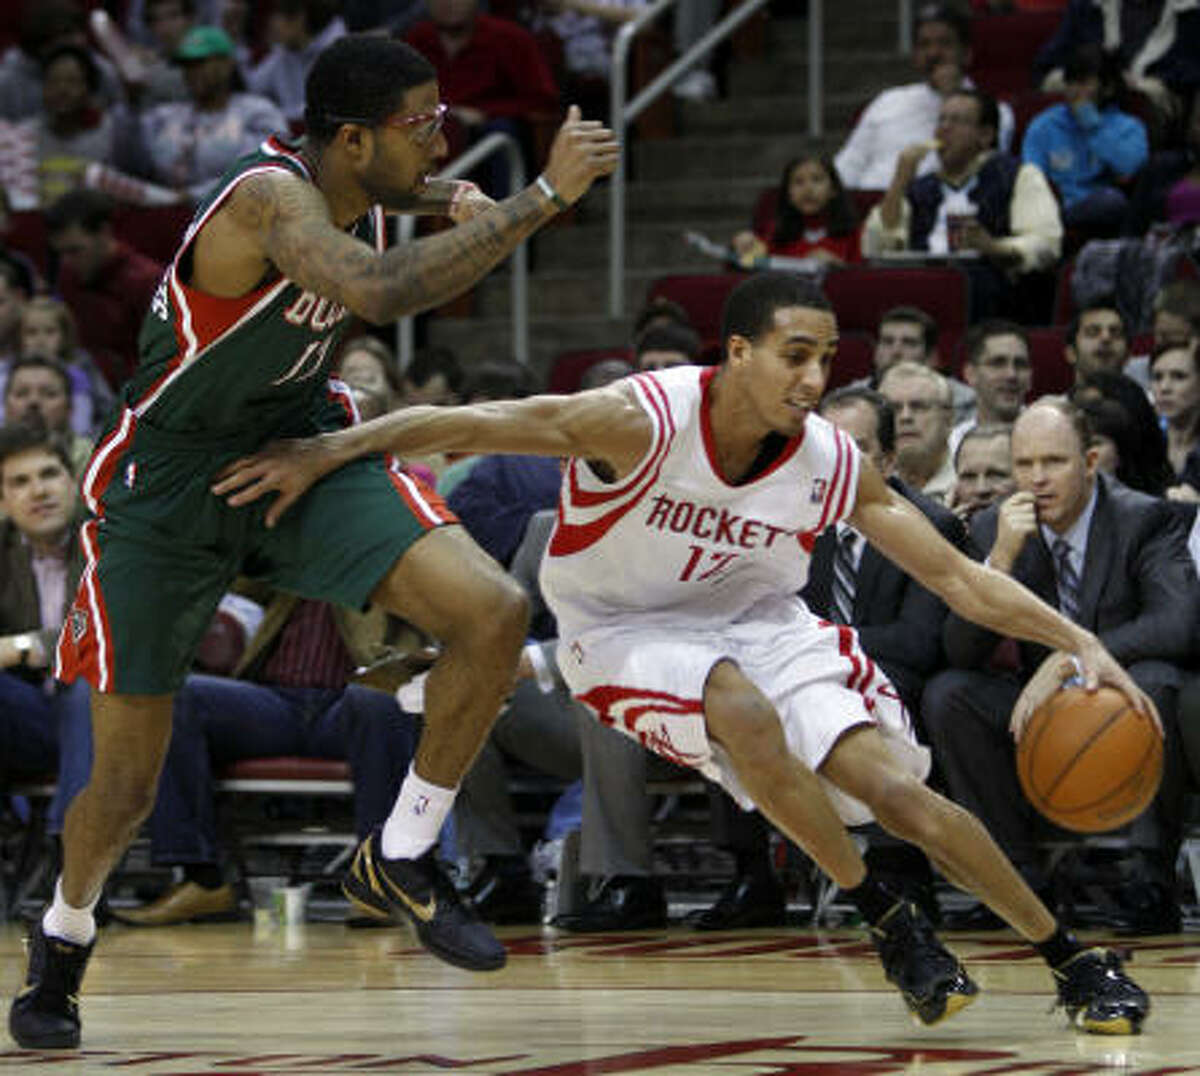 Rockets guard Kevin Martin works around Bucks forward Chris Douglas-Roberts during the third quarter.